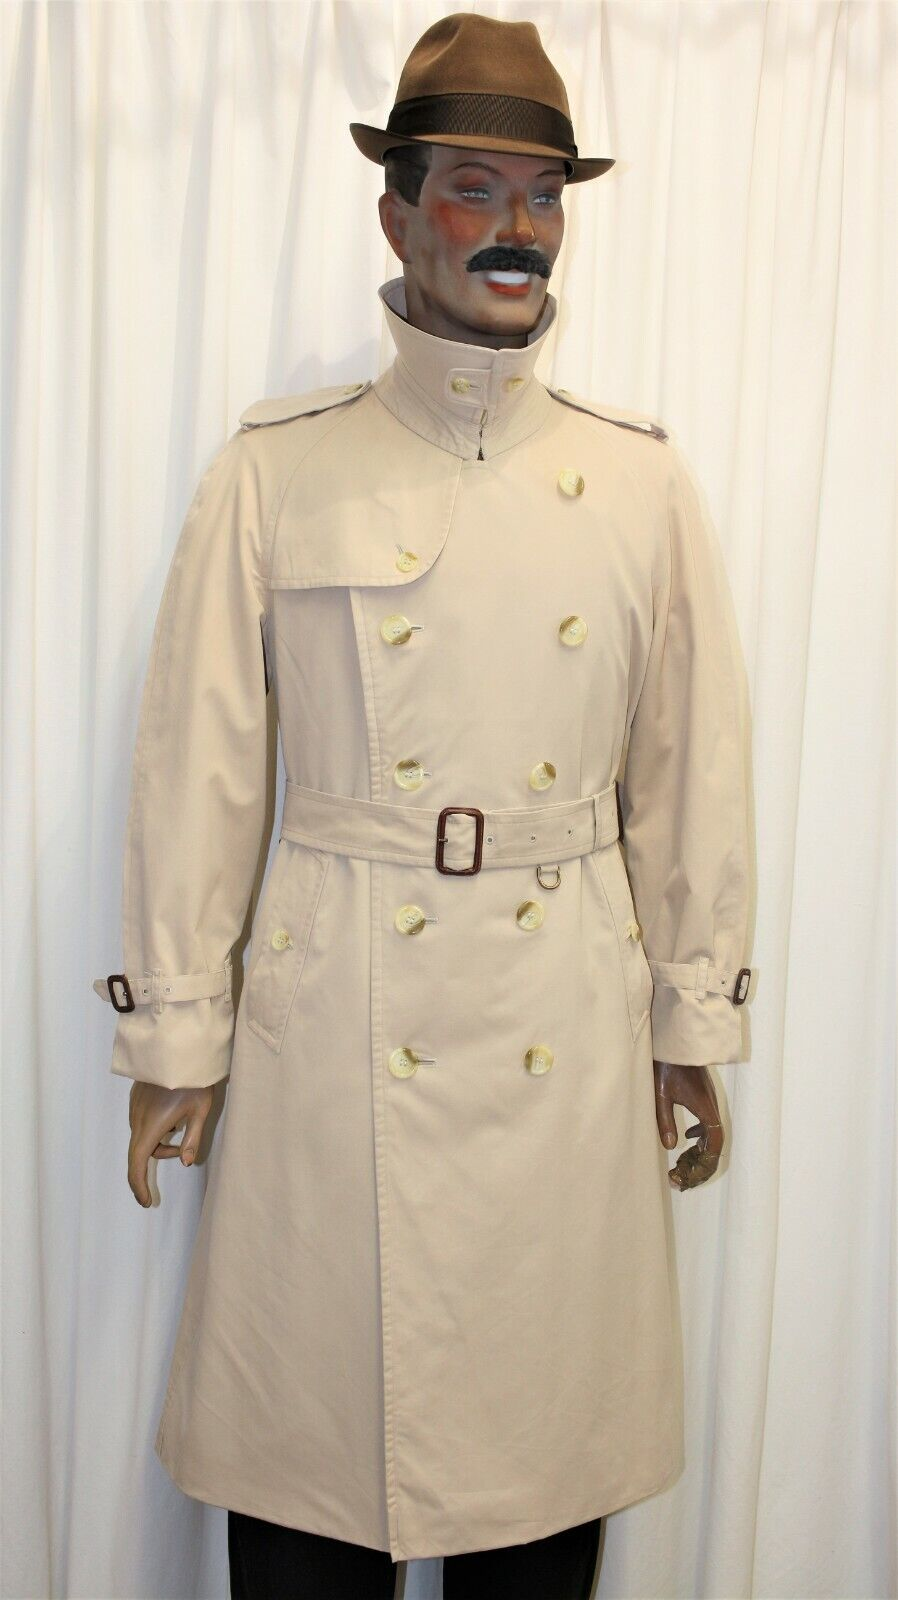 Trench imperméable burberry's homme beige taille 52 r made in england